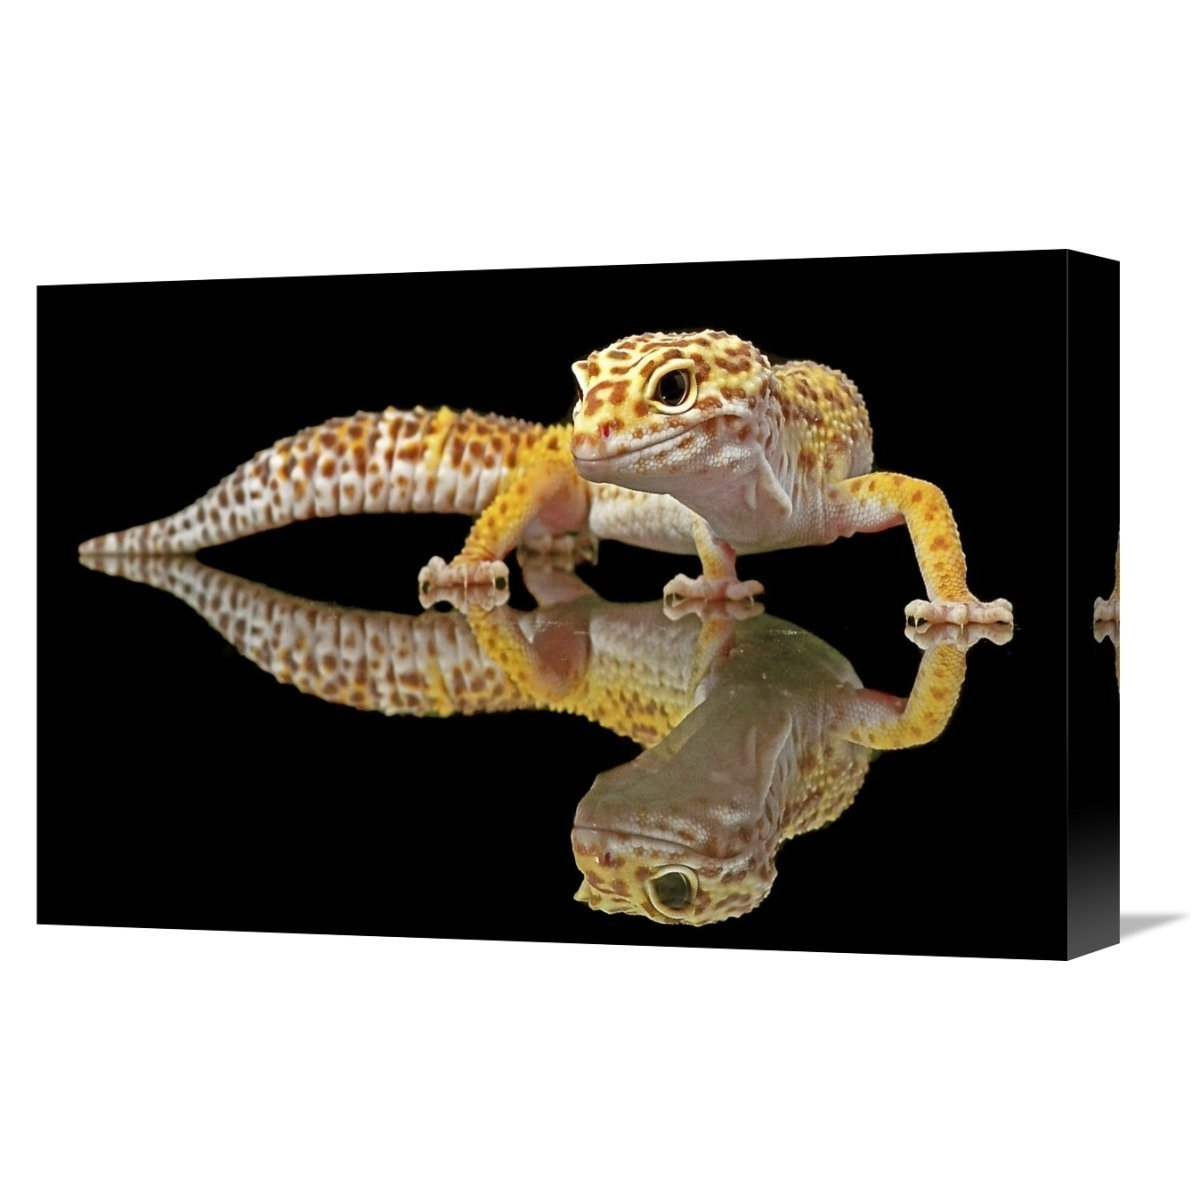 Gecko Canvas Wall Art With Regard To Latest Shop Global Gallery, Dikky Oesin 'leopard Gecko' Stretched Canvas (View 12 of 15)